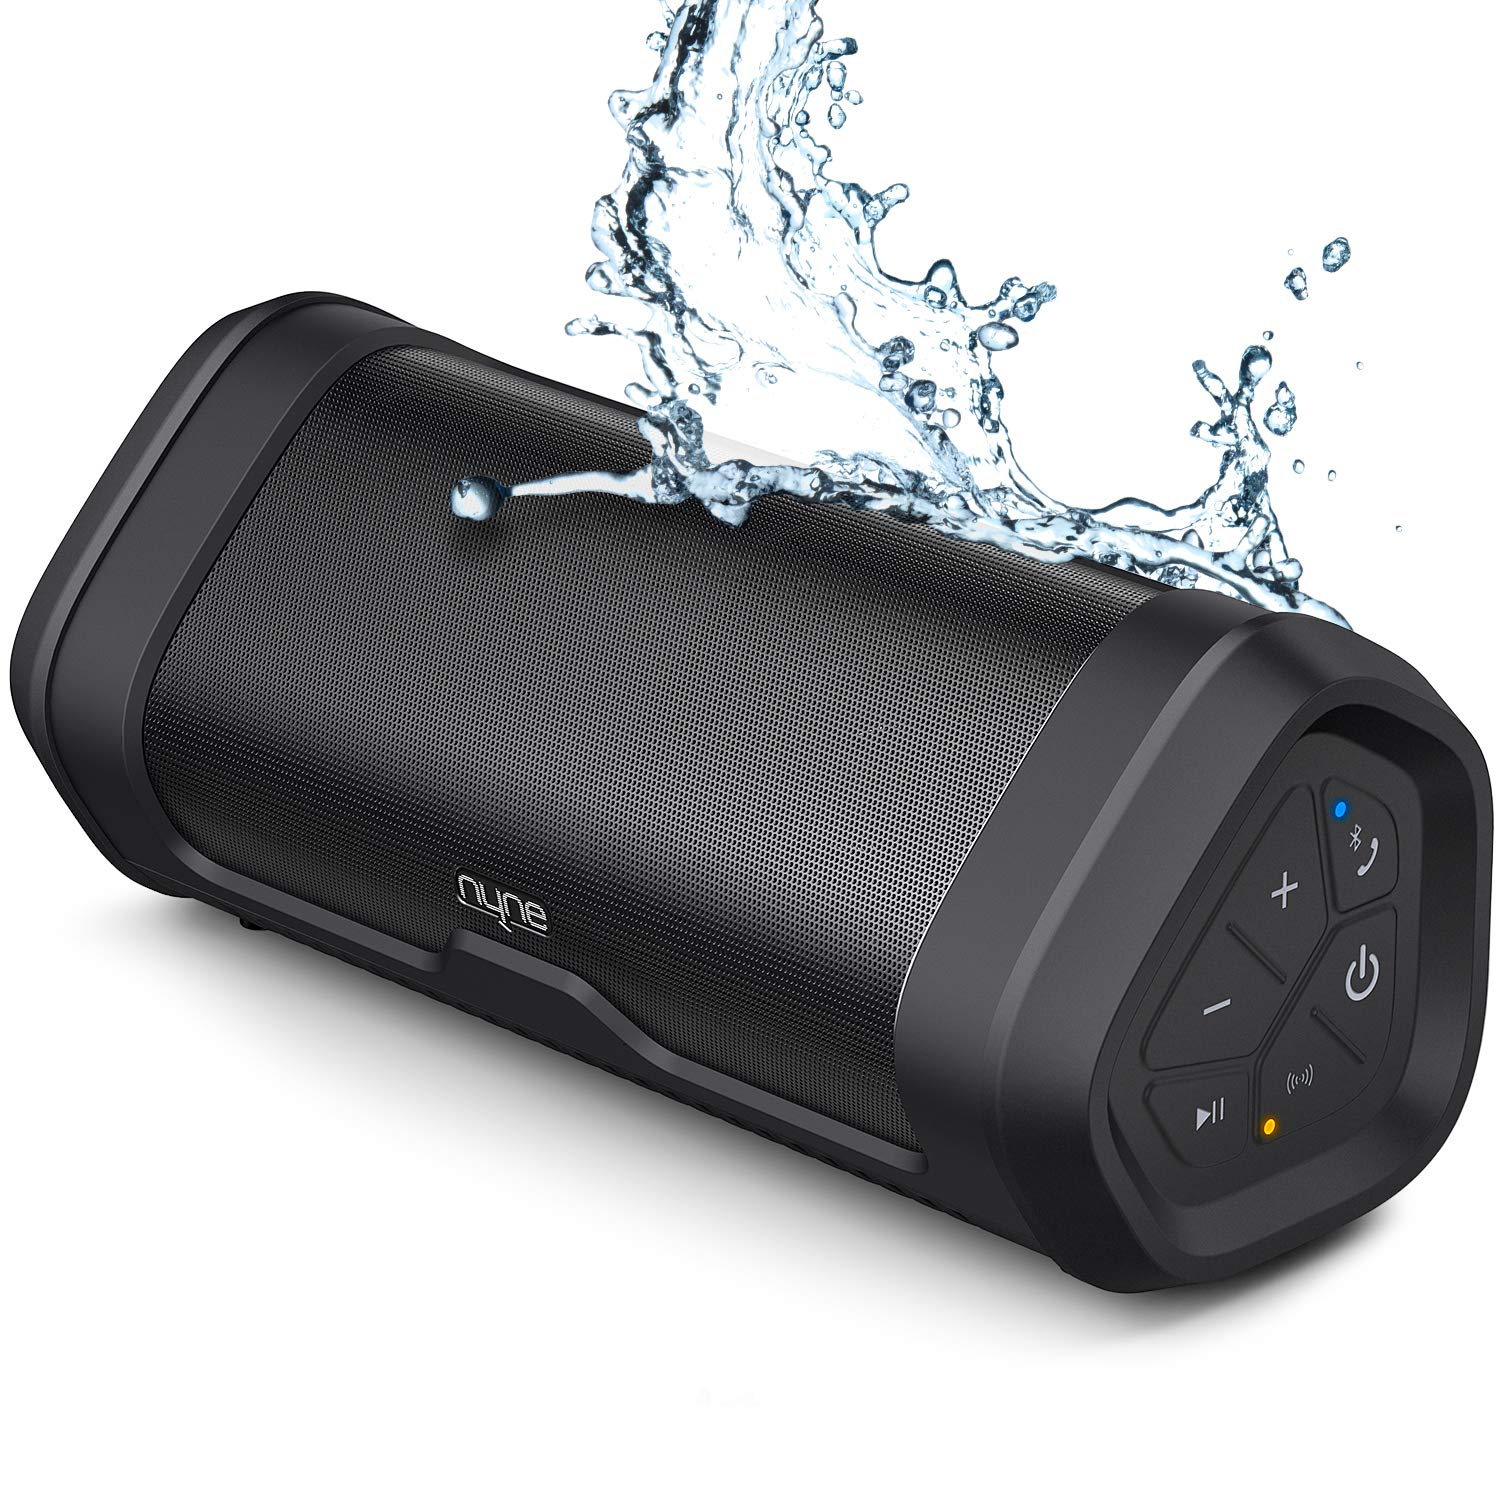 NYNE Boost Portable Waterproof Bluetooth Speakers with Premium Stereo Sound - IP67, 20 Hours Play-time, 100 ft Range, Built-in Power Bank and Mic, True Wireless Stereo, Loud Wireless Speaker by Nyne